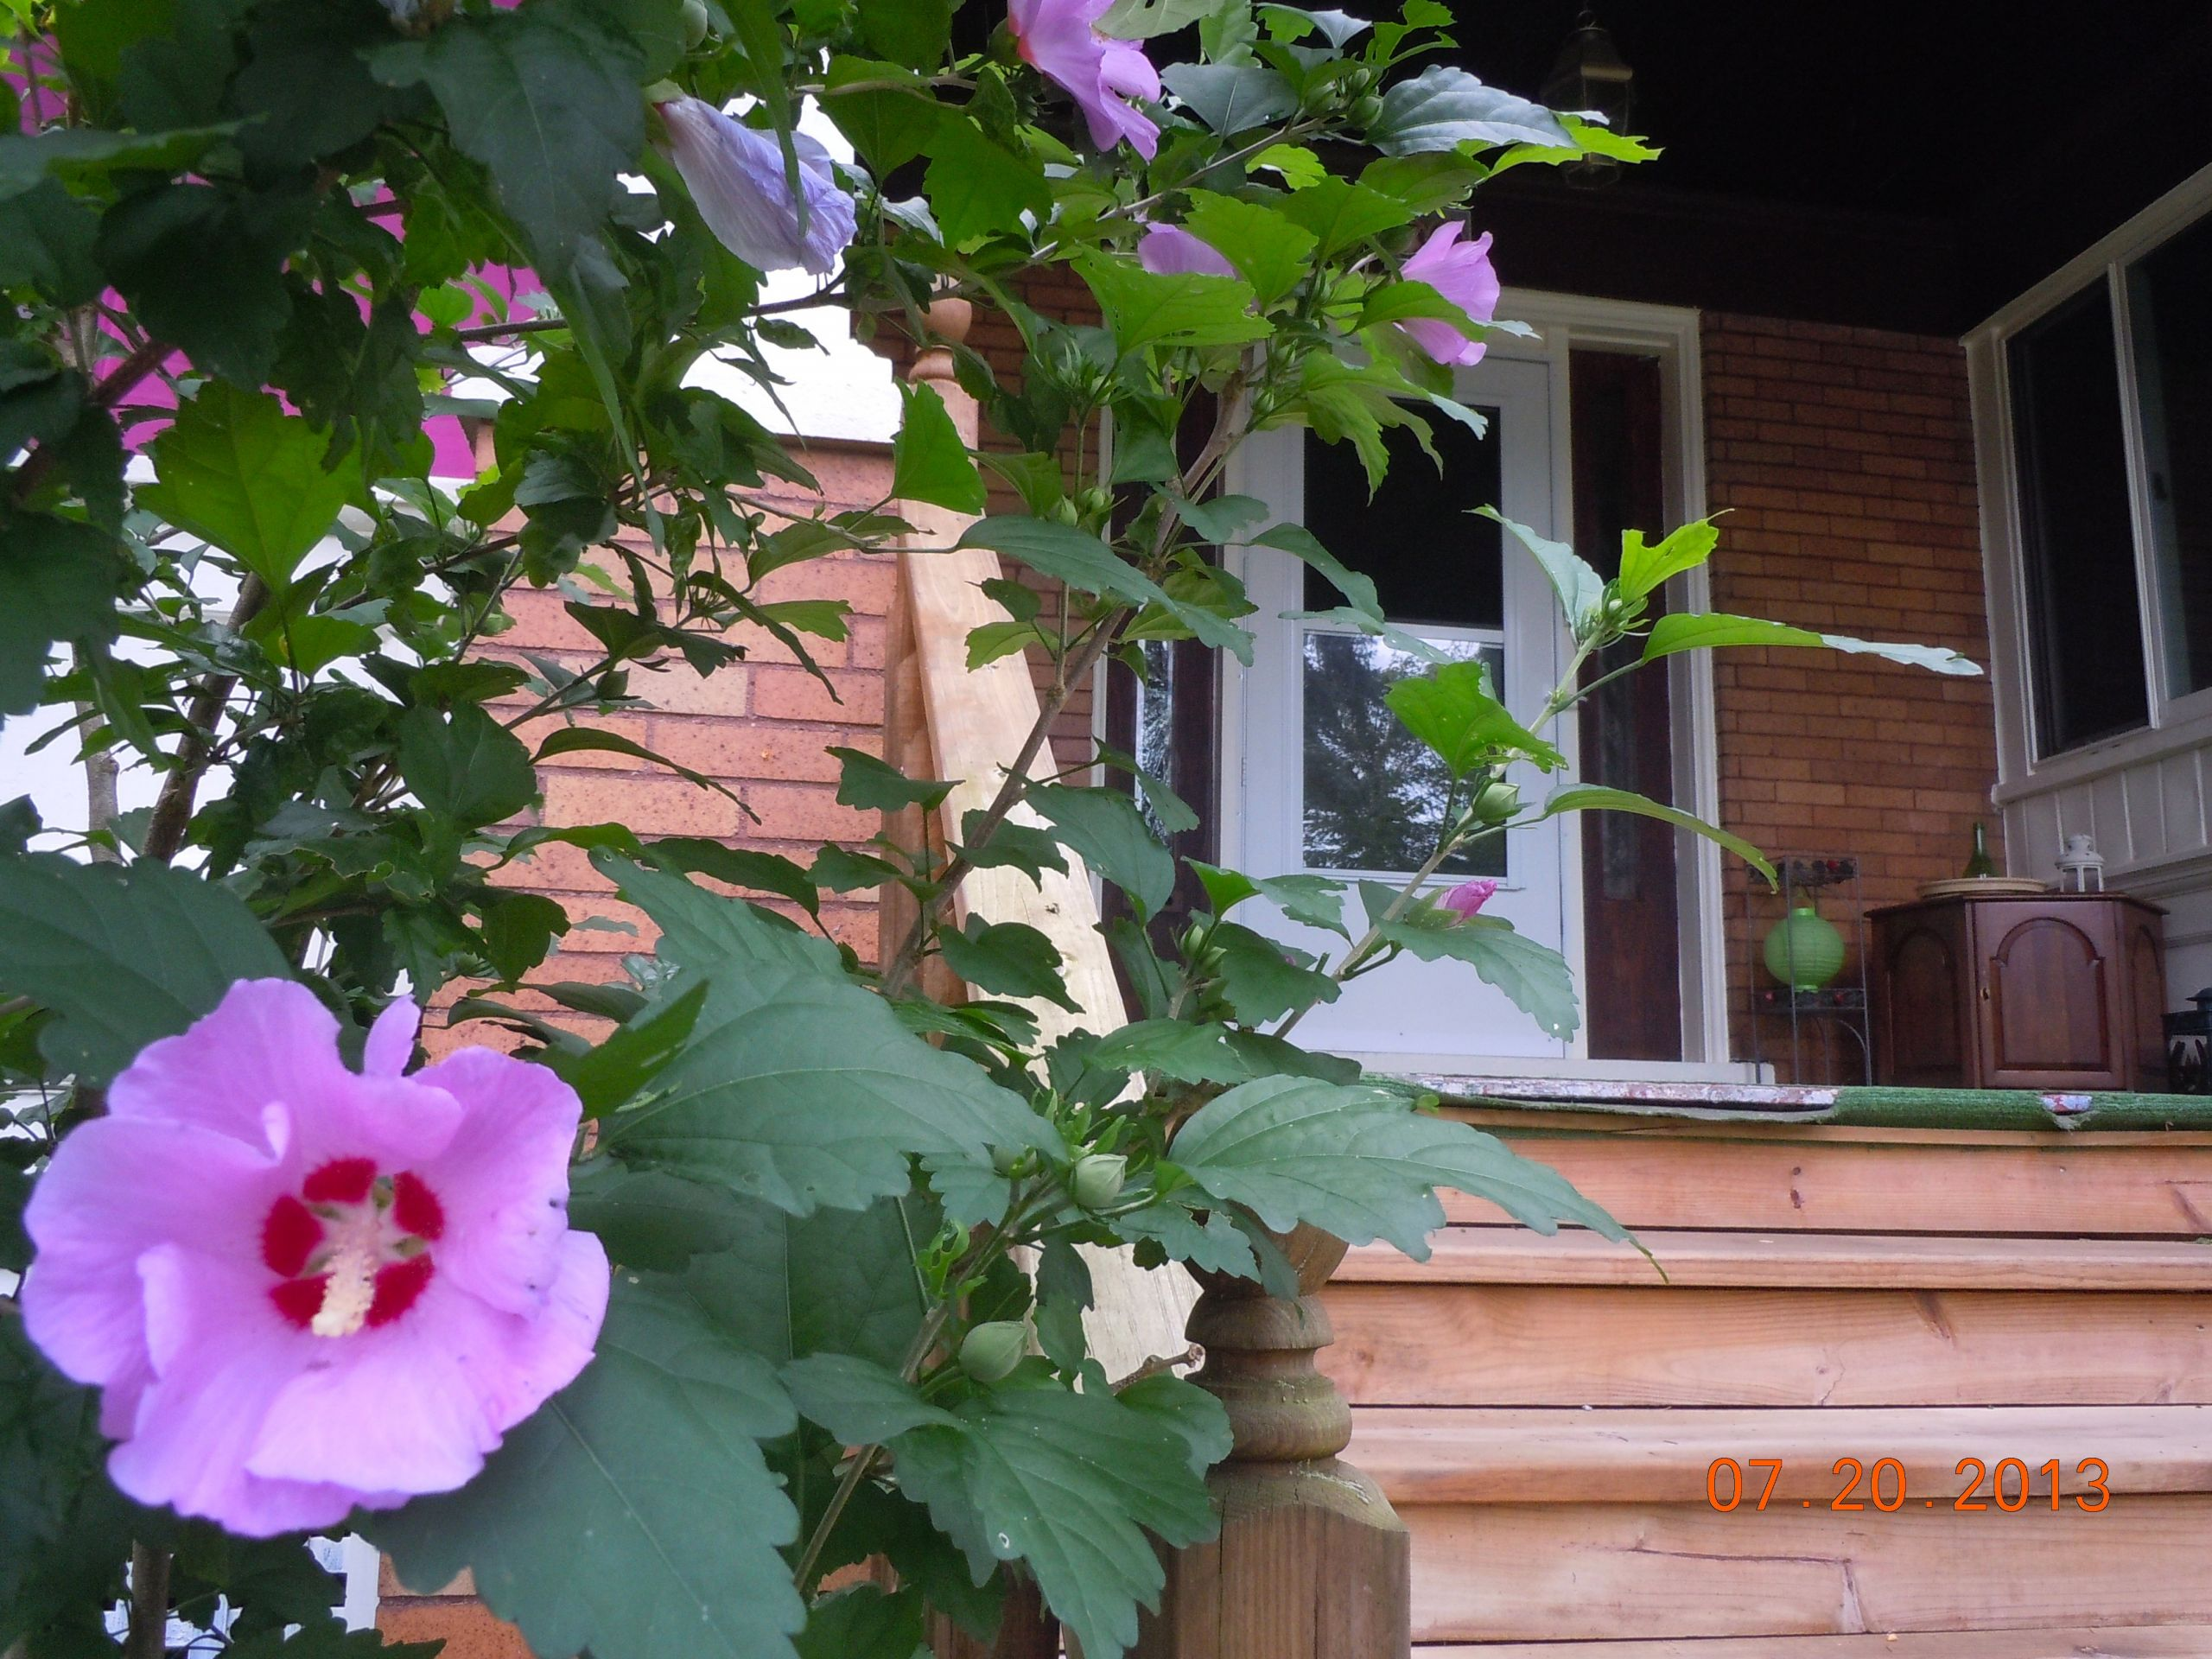 hibiscus blooms at the front yard 41